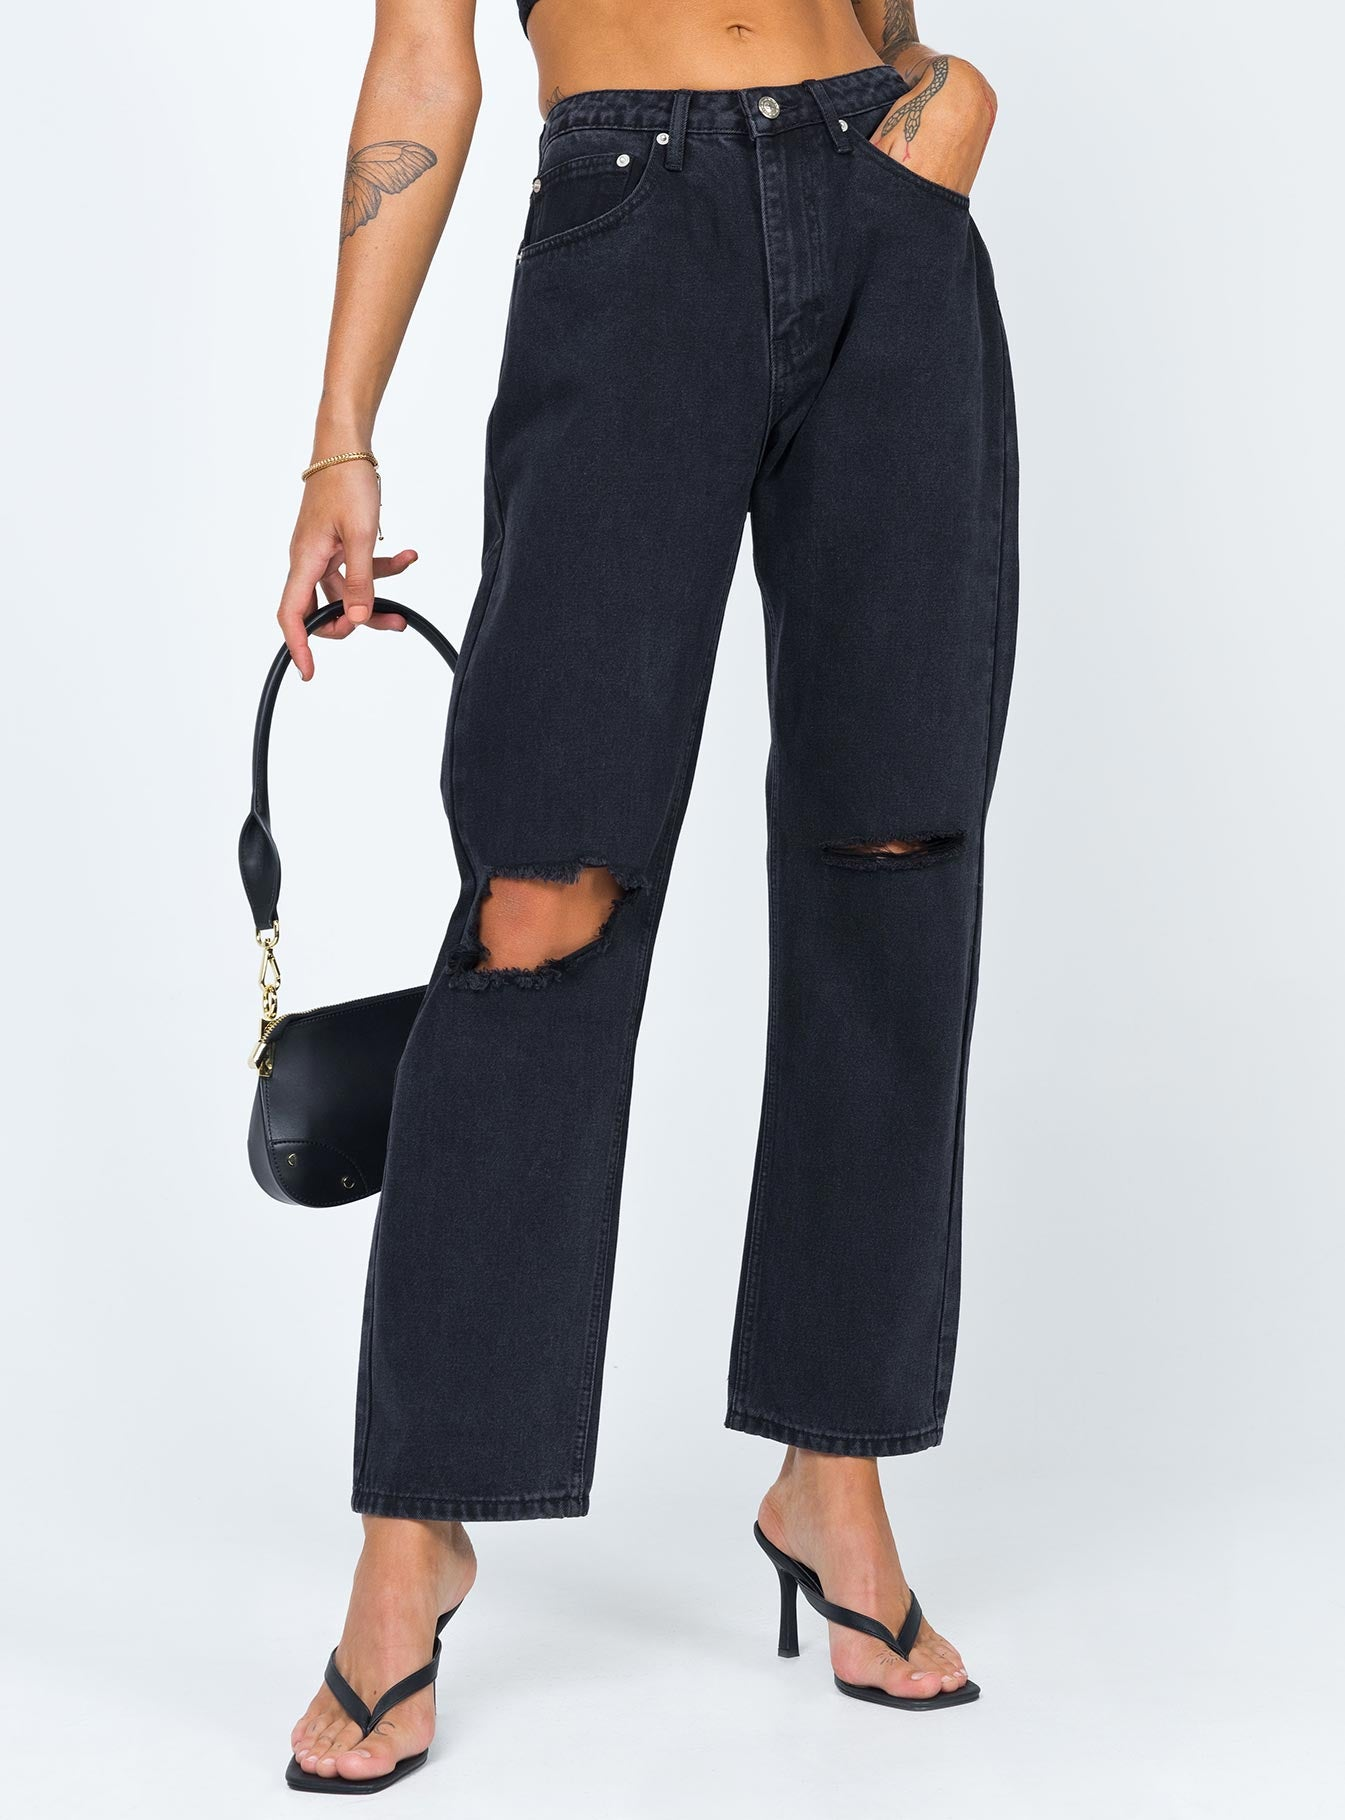 Fairmount Straight Leg Jeans Black Denim